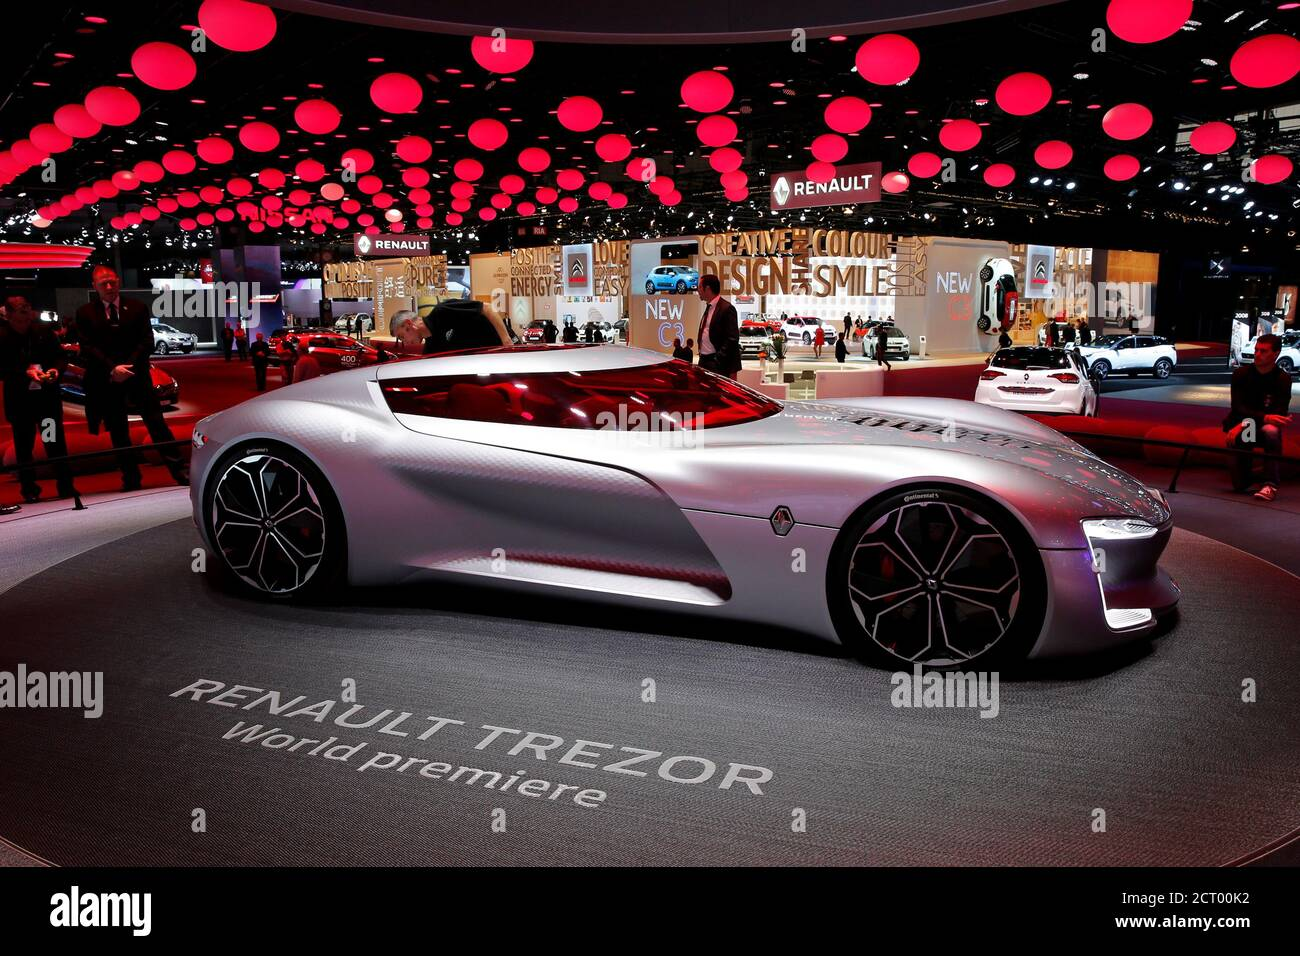 The concept car Renault Trezor is displayed on media day at the Paris auto show, in Paris, France, September 30, 2016. REUTERS/Benoit Tessier Banque D'Images